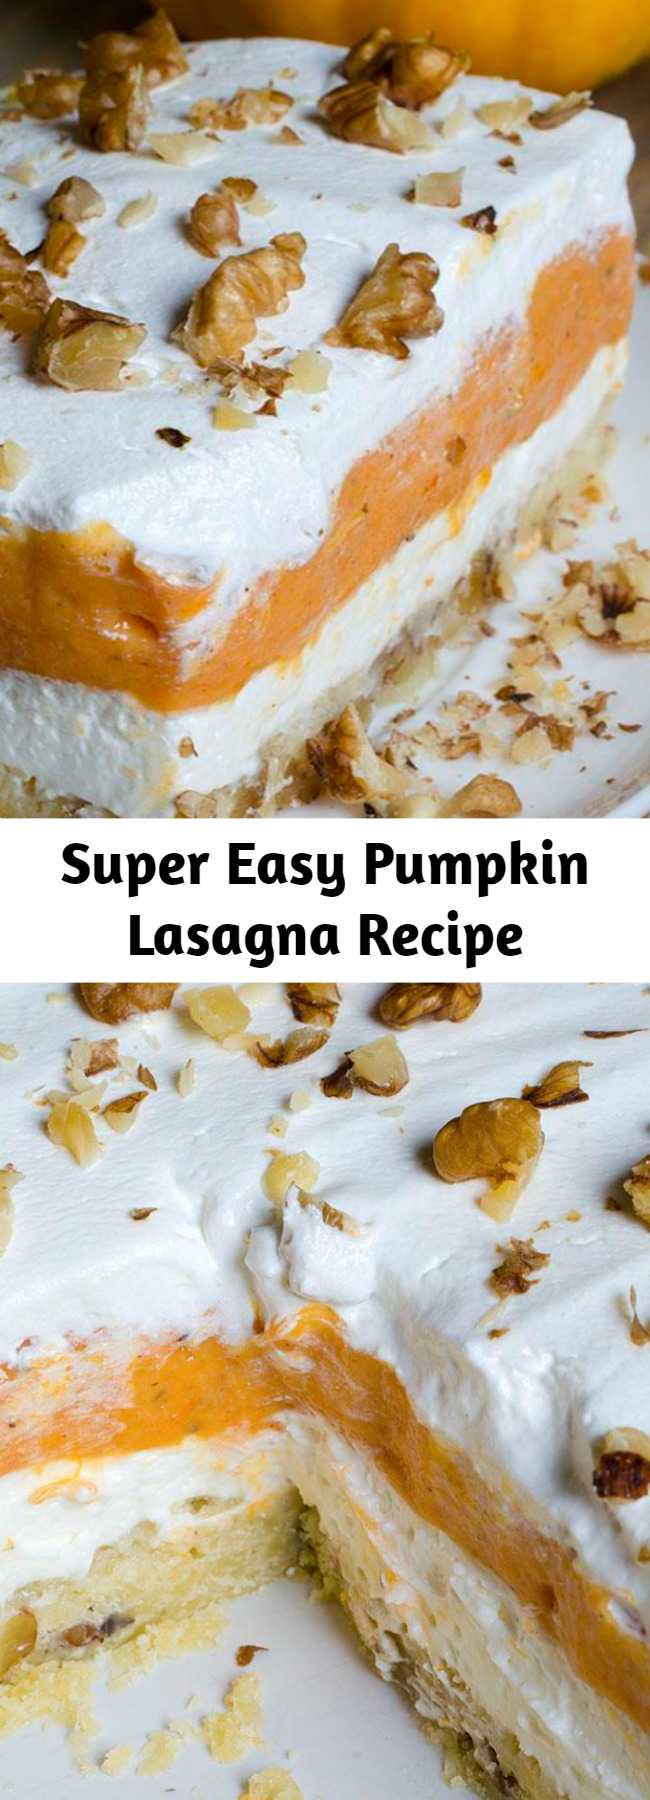 Super Easy Pumpkin Lasagna Recipe - This awesome Pumpkin Lasagna recipe has layers of moist pumpkin cake, creamy cheesecake and a crunchy crust. It's a delicious dessert recipe that's super fun to make and perfect for the fall! #pumpkin #lasagna #desserts